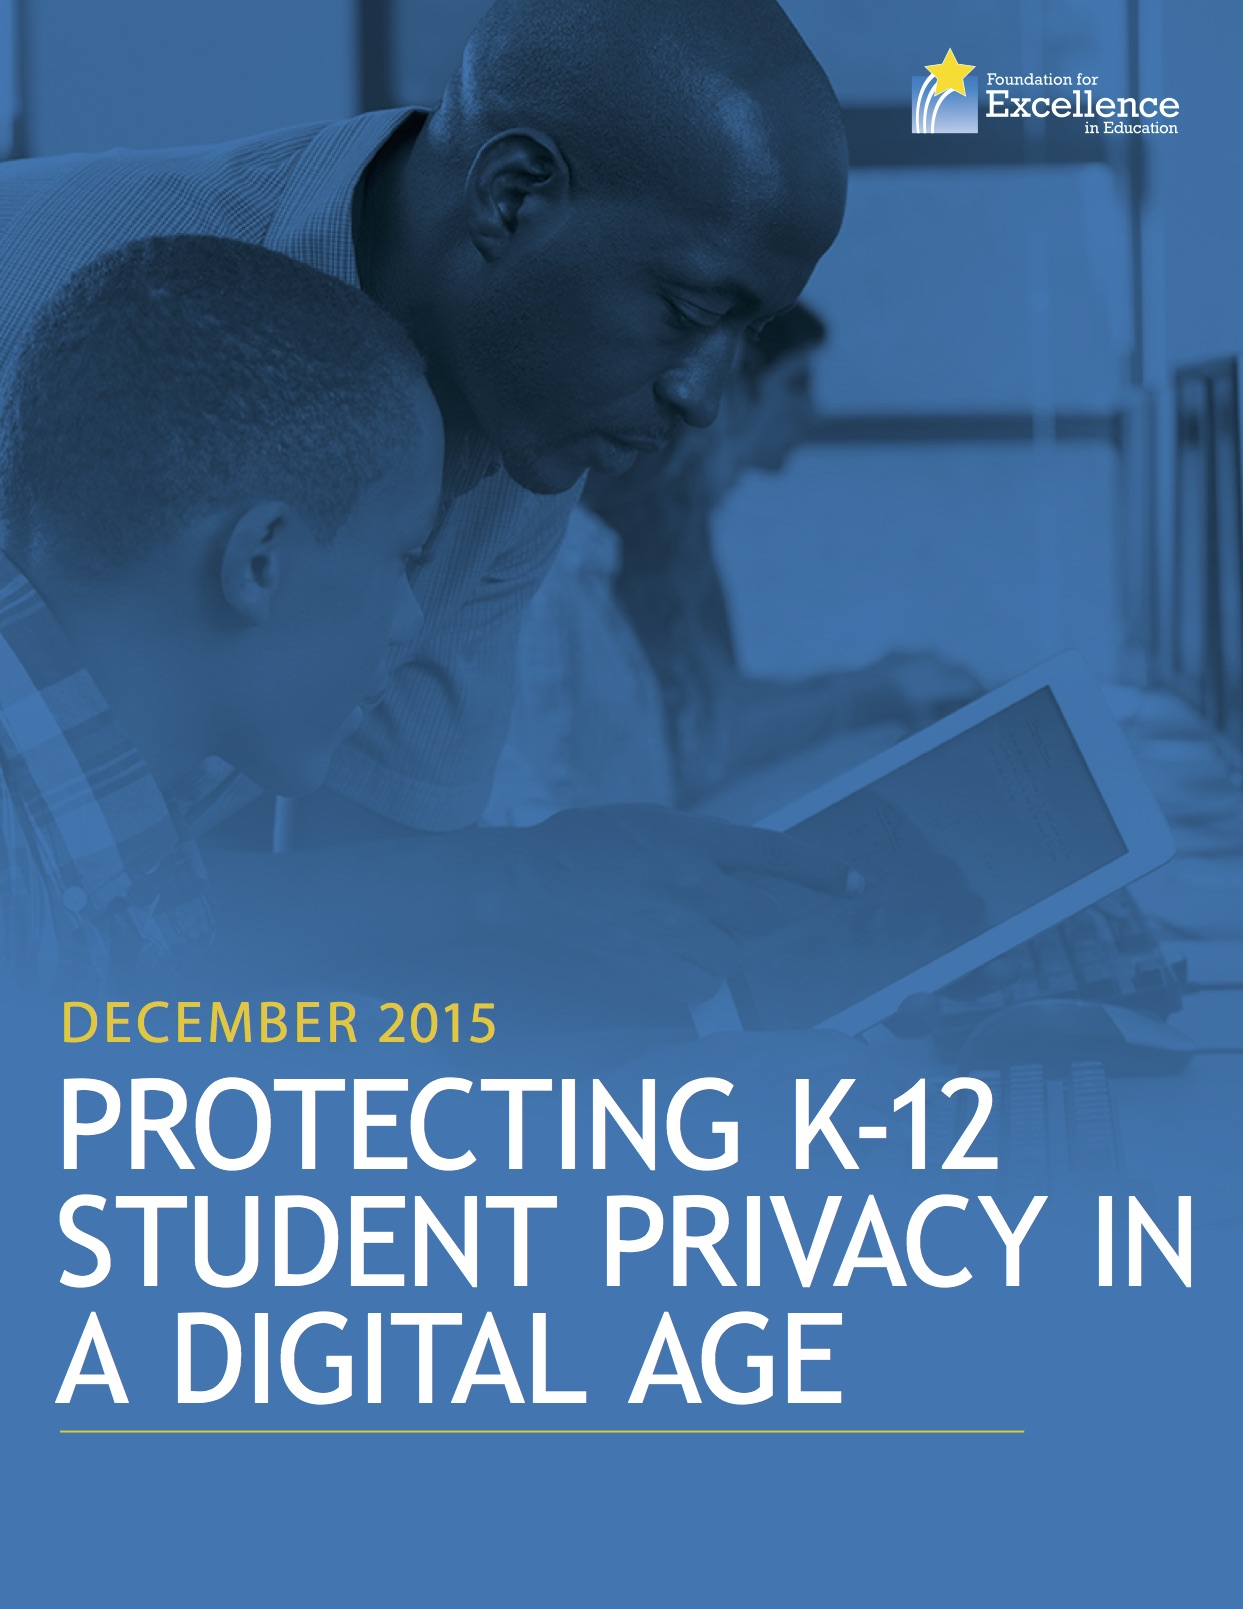 Protecting K-12 Student Data Privacy in a Digital Age